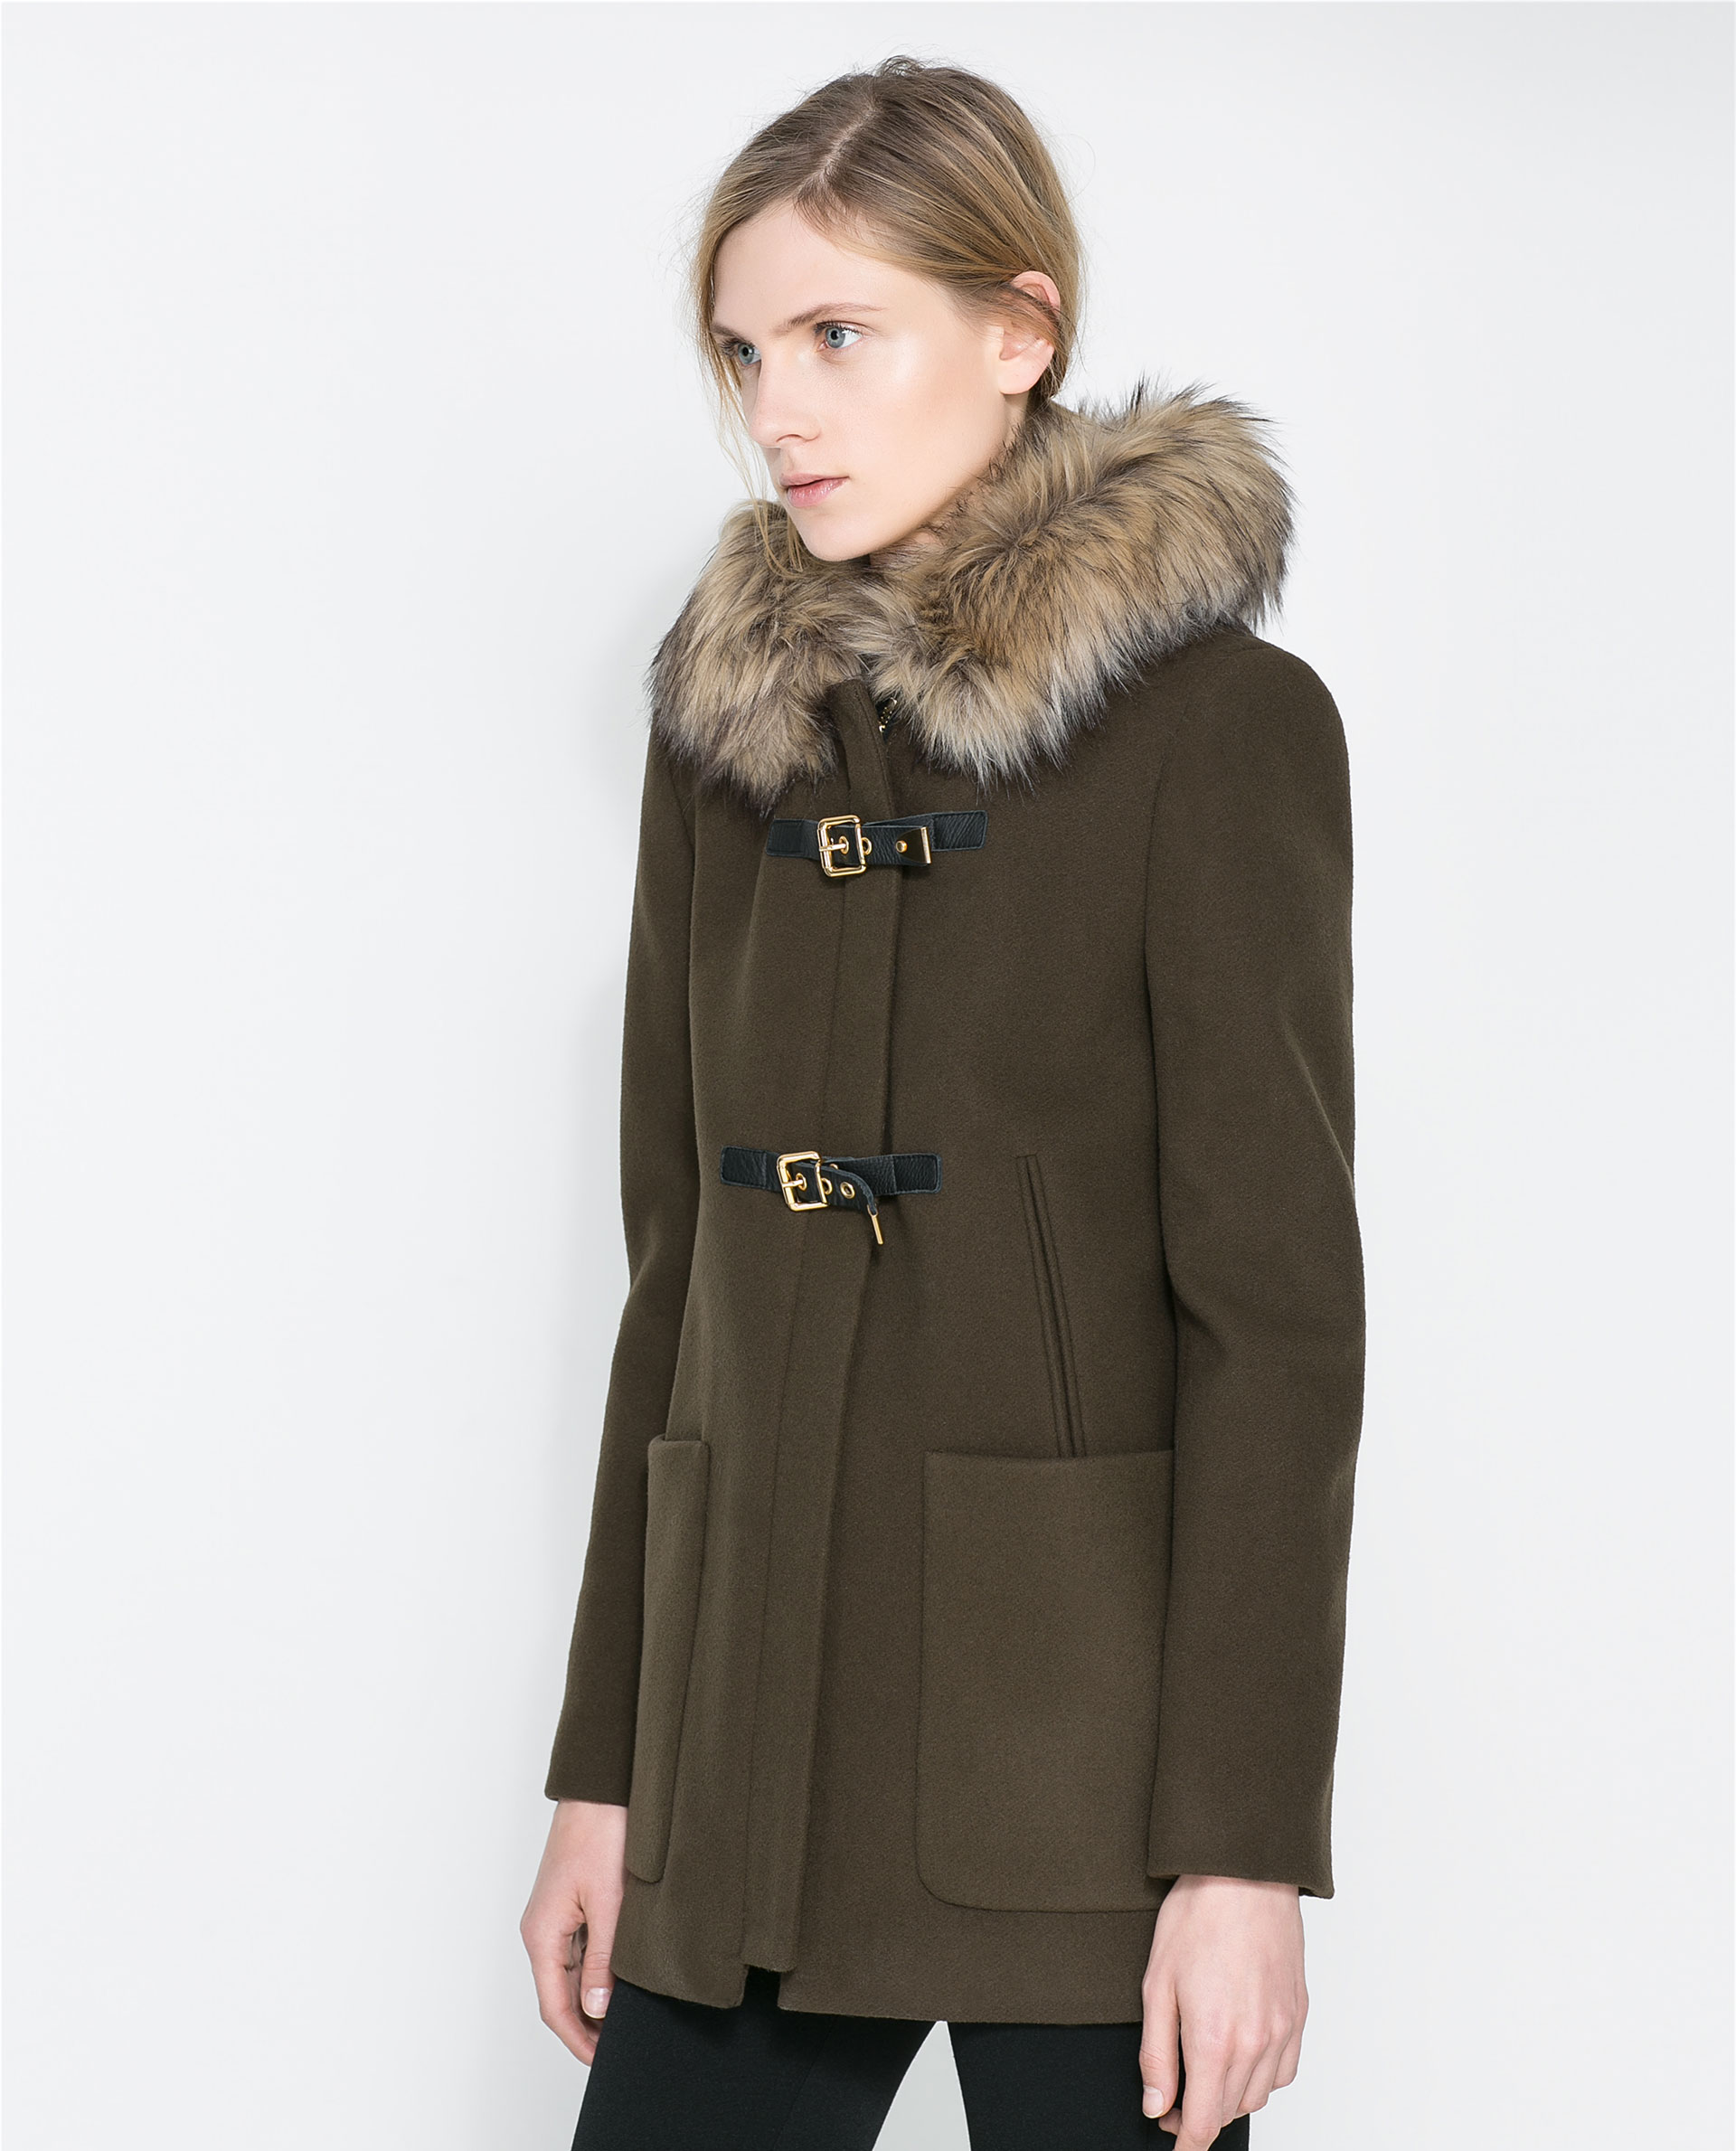 Zara Duffle Coat with Fur Trimmed Hood in Natural | Lyst